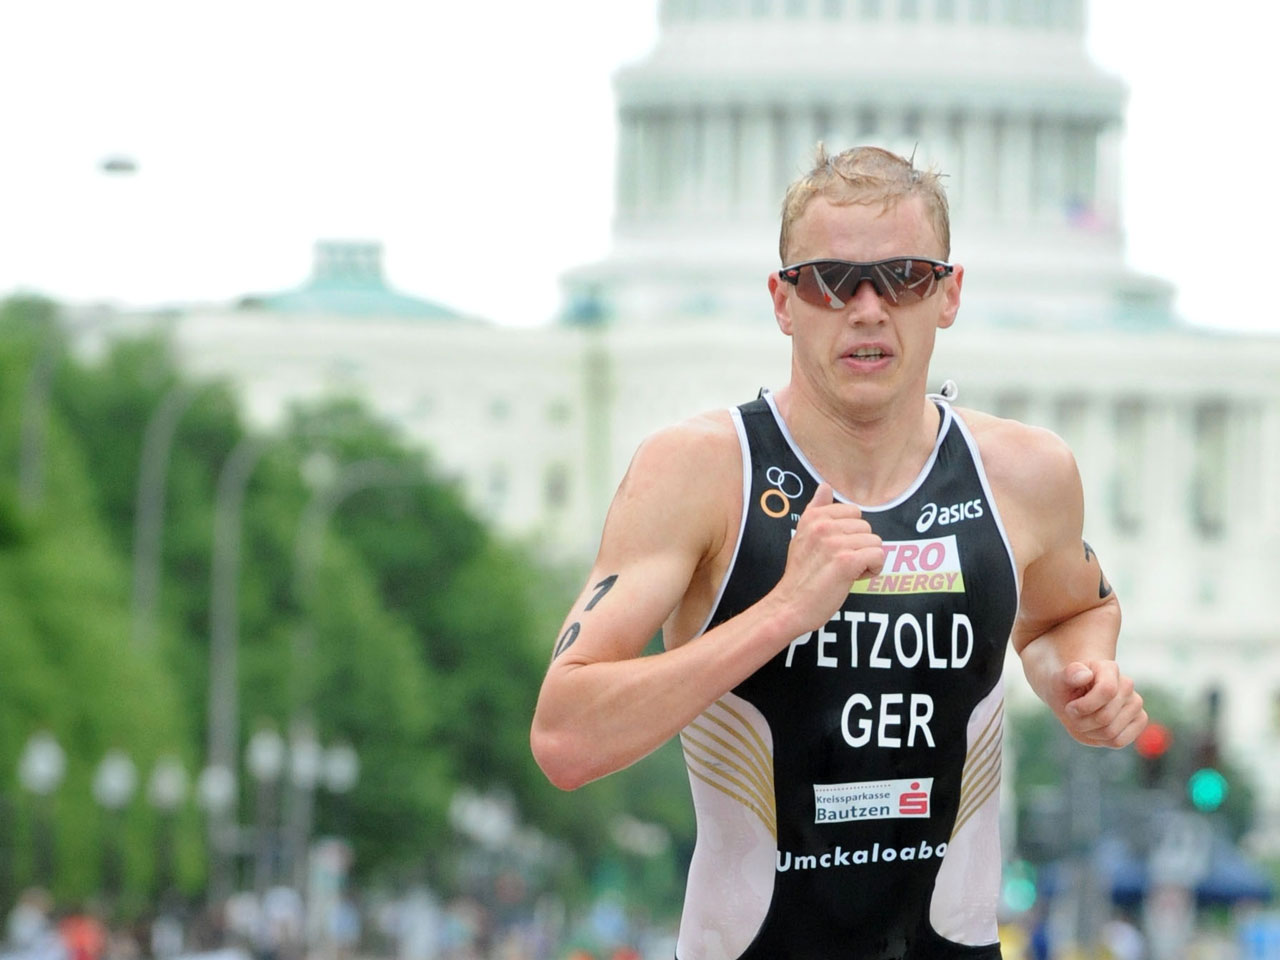 Maik Petzold beim Triathlon Weltcup in Washington, Foto: Delly Carr